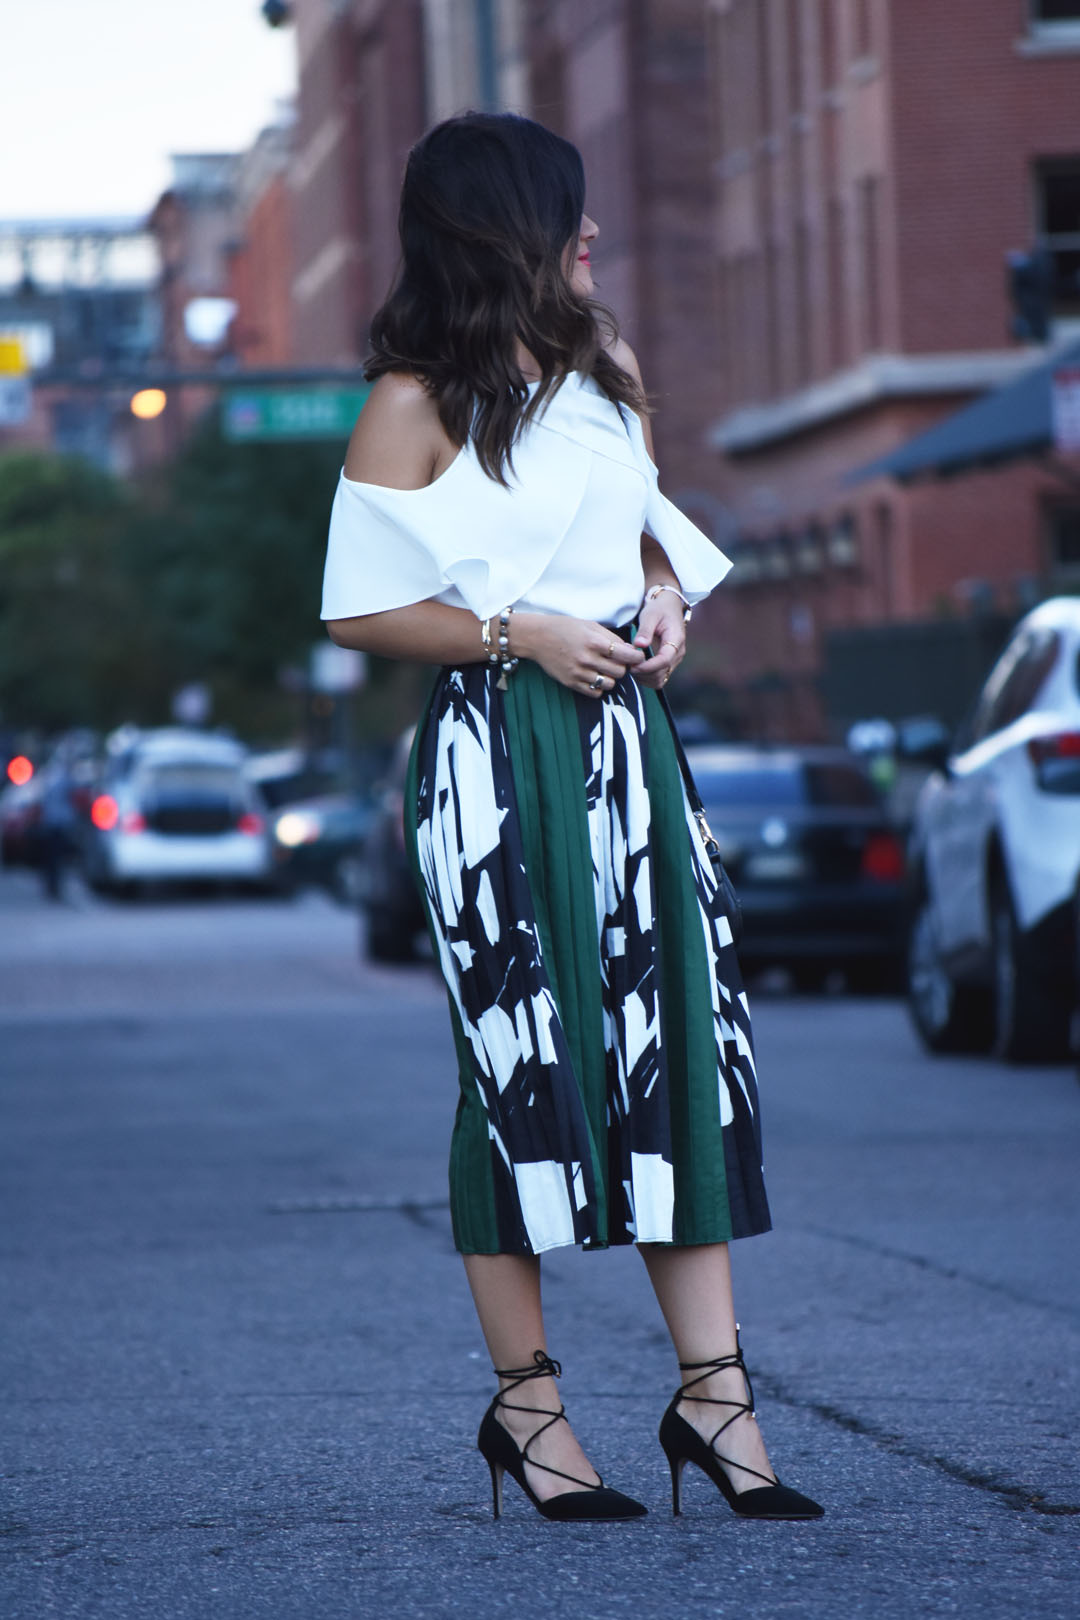 42c262b550f Carolina Hellal of Chic Talk wearing a pleated green skirt and cold shoulder  top - PLEATED